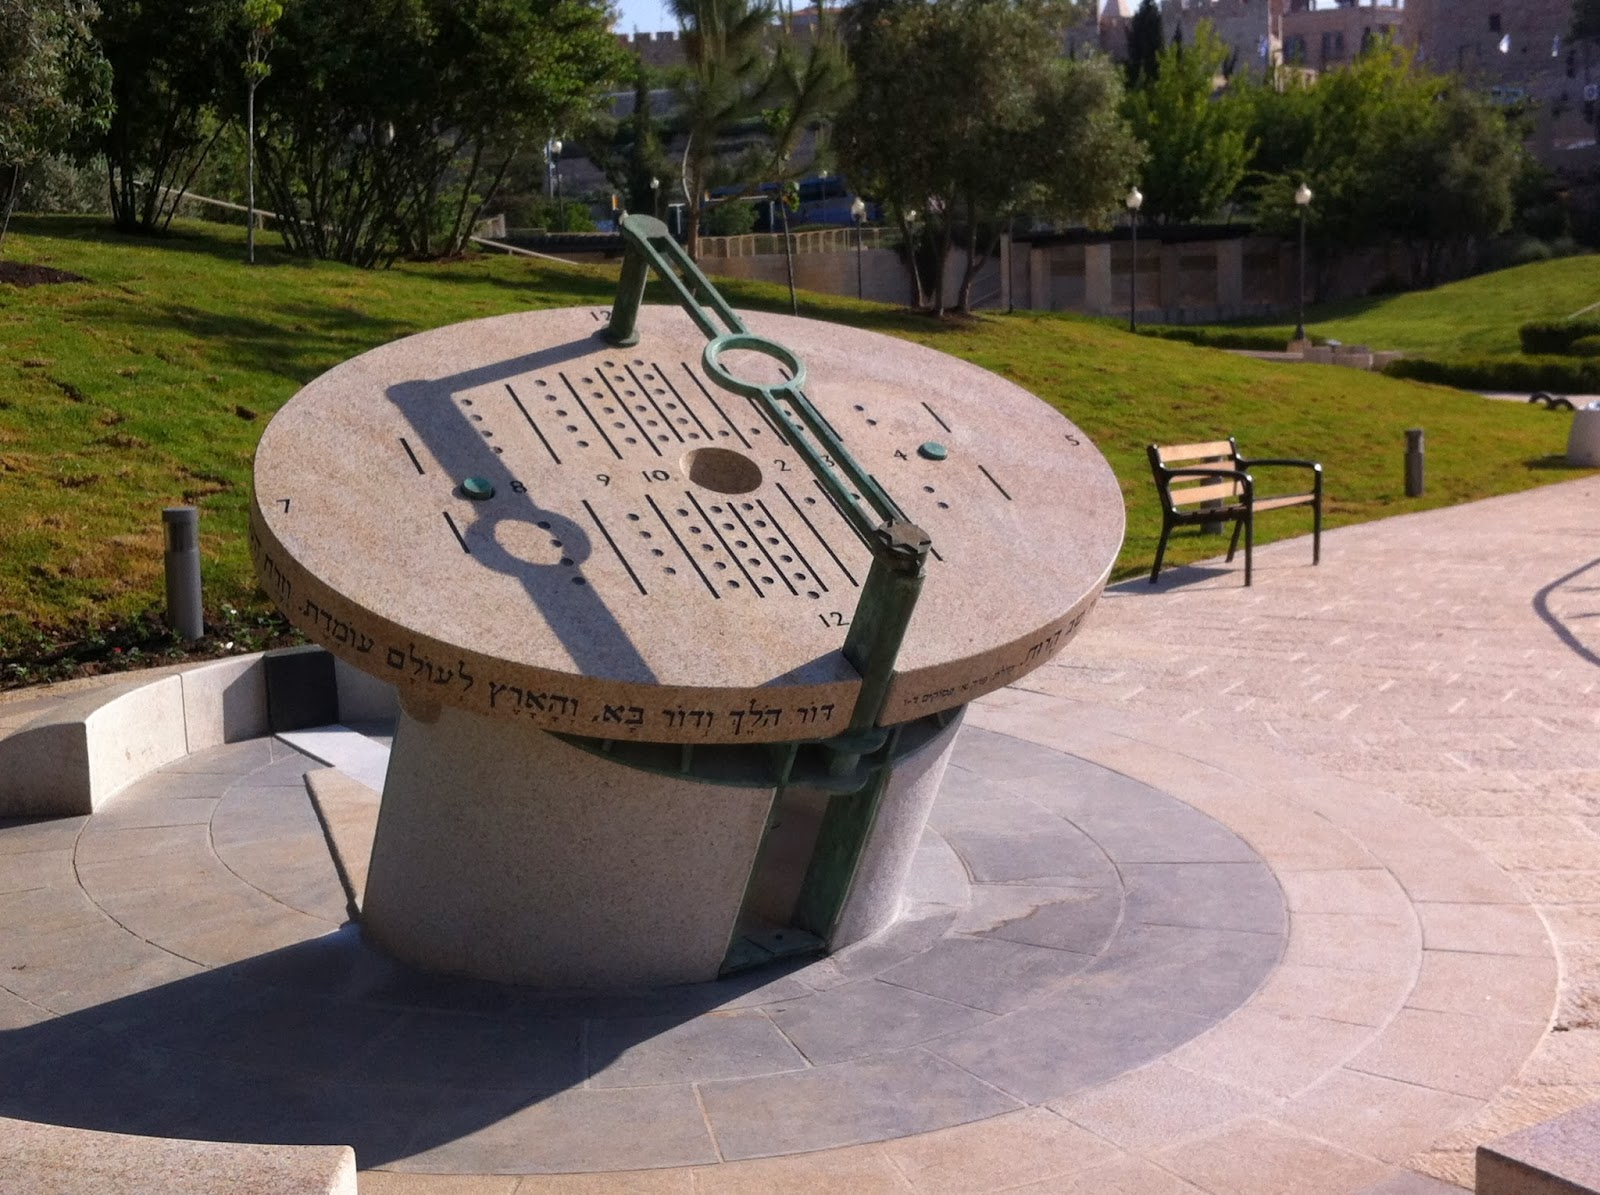 Sundial in Teddy Park, Jerusalem